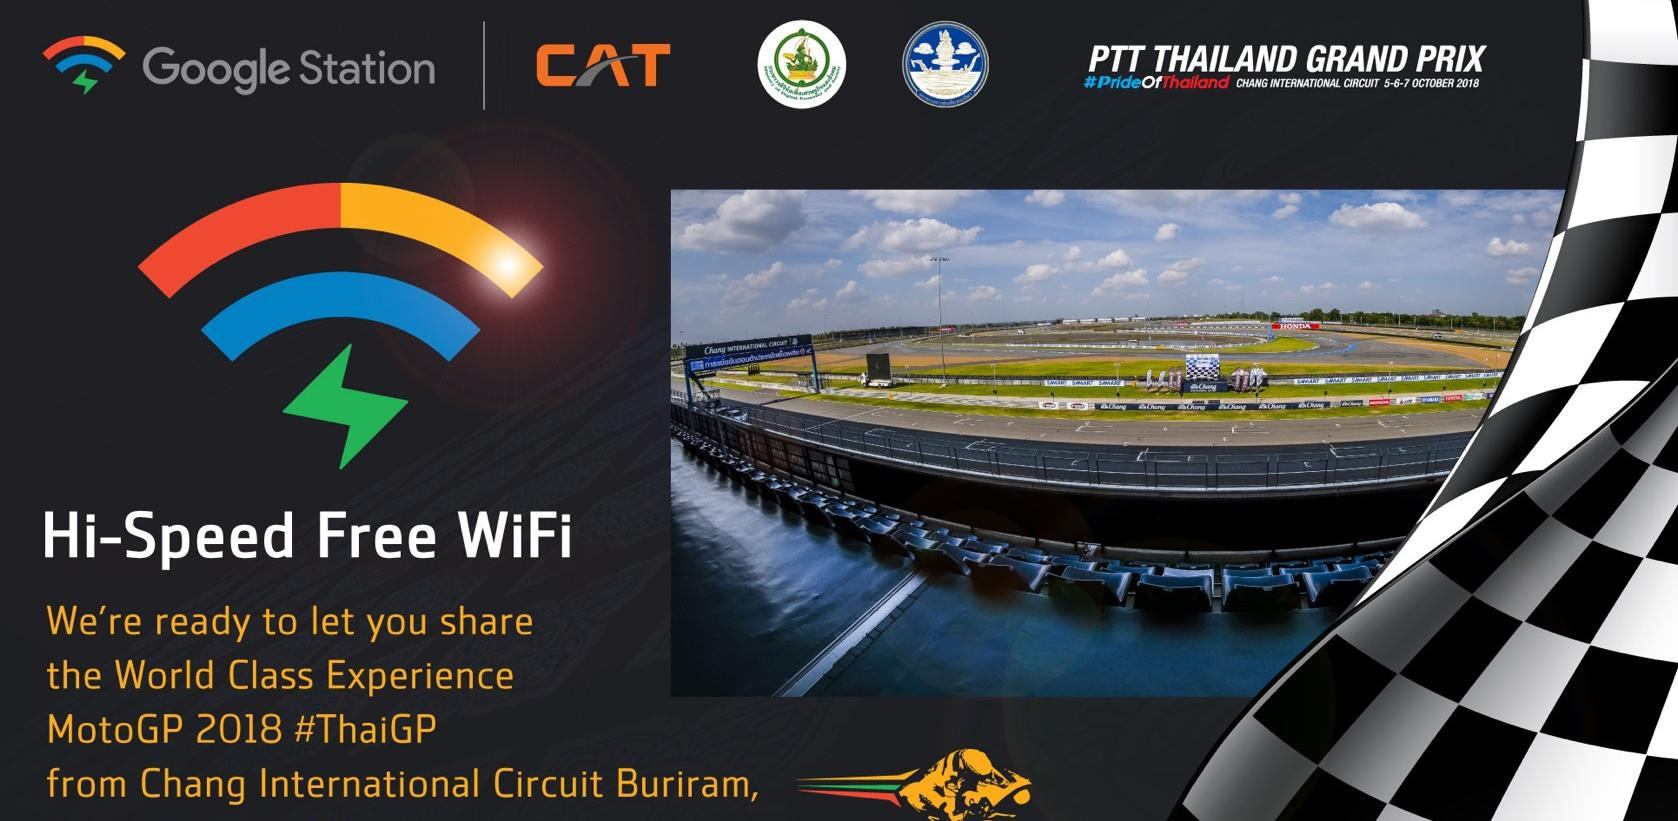 Google Station-CAT WiFi to be featured in MotoGP 2018